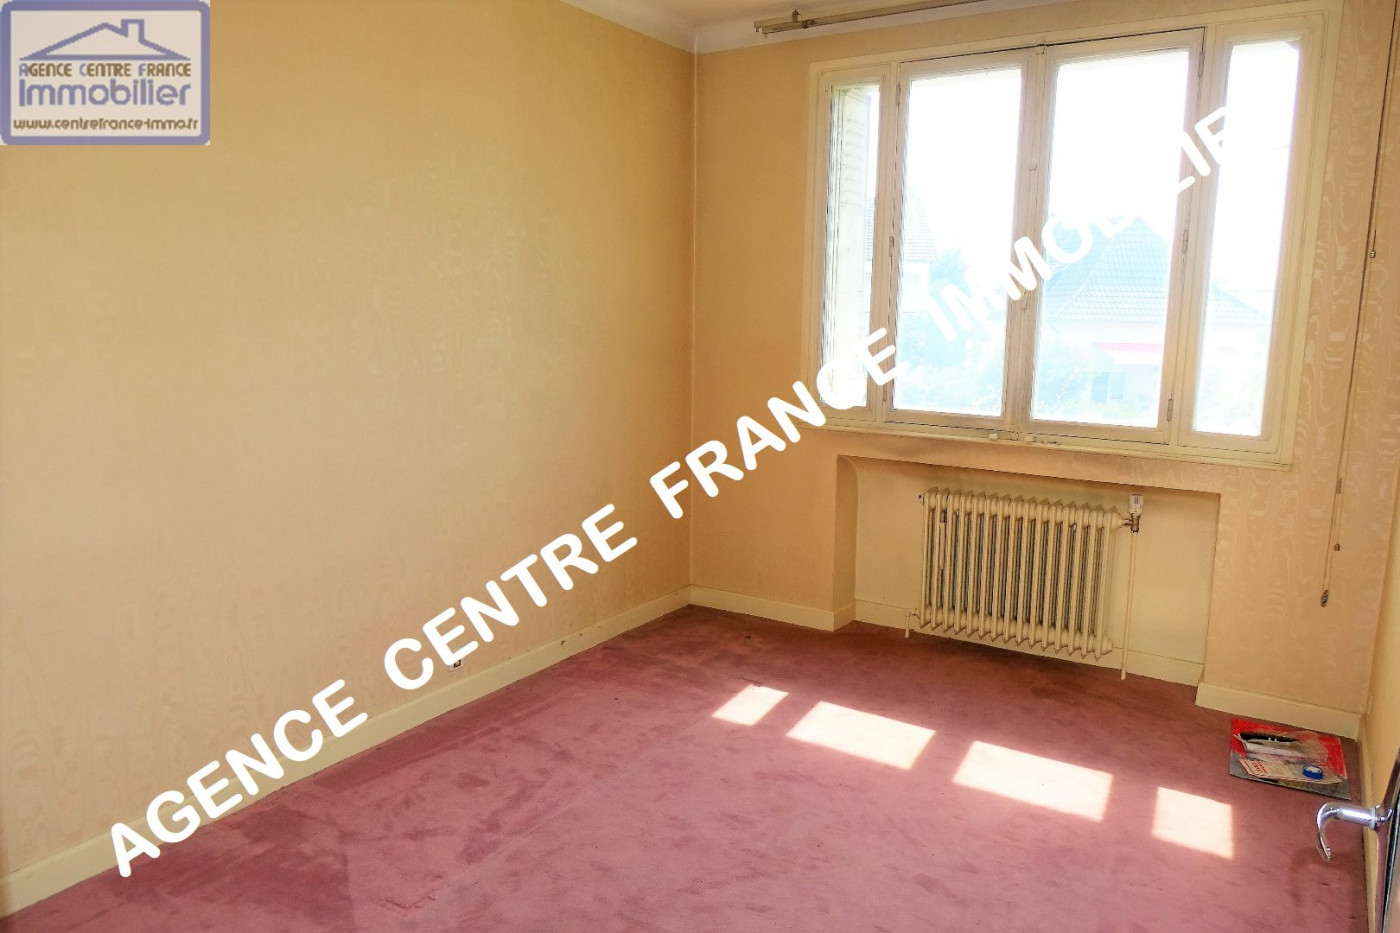 A vendre Trouy 03001940 Agence centre france immobilier